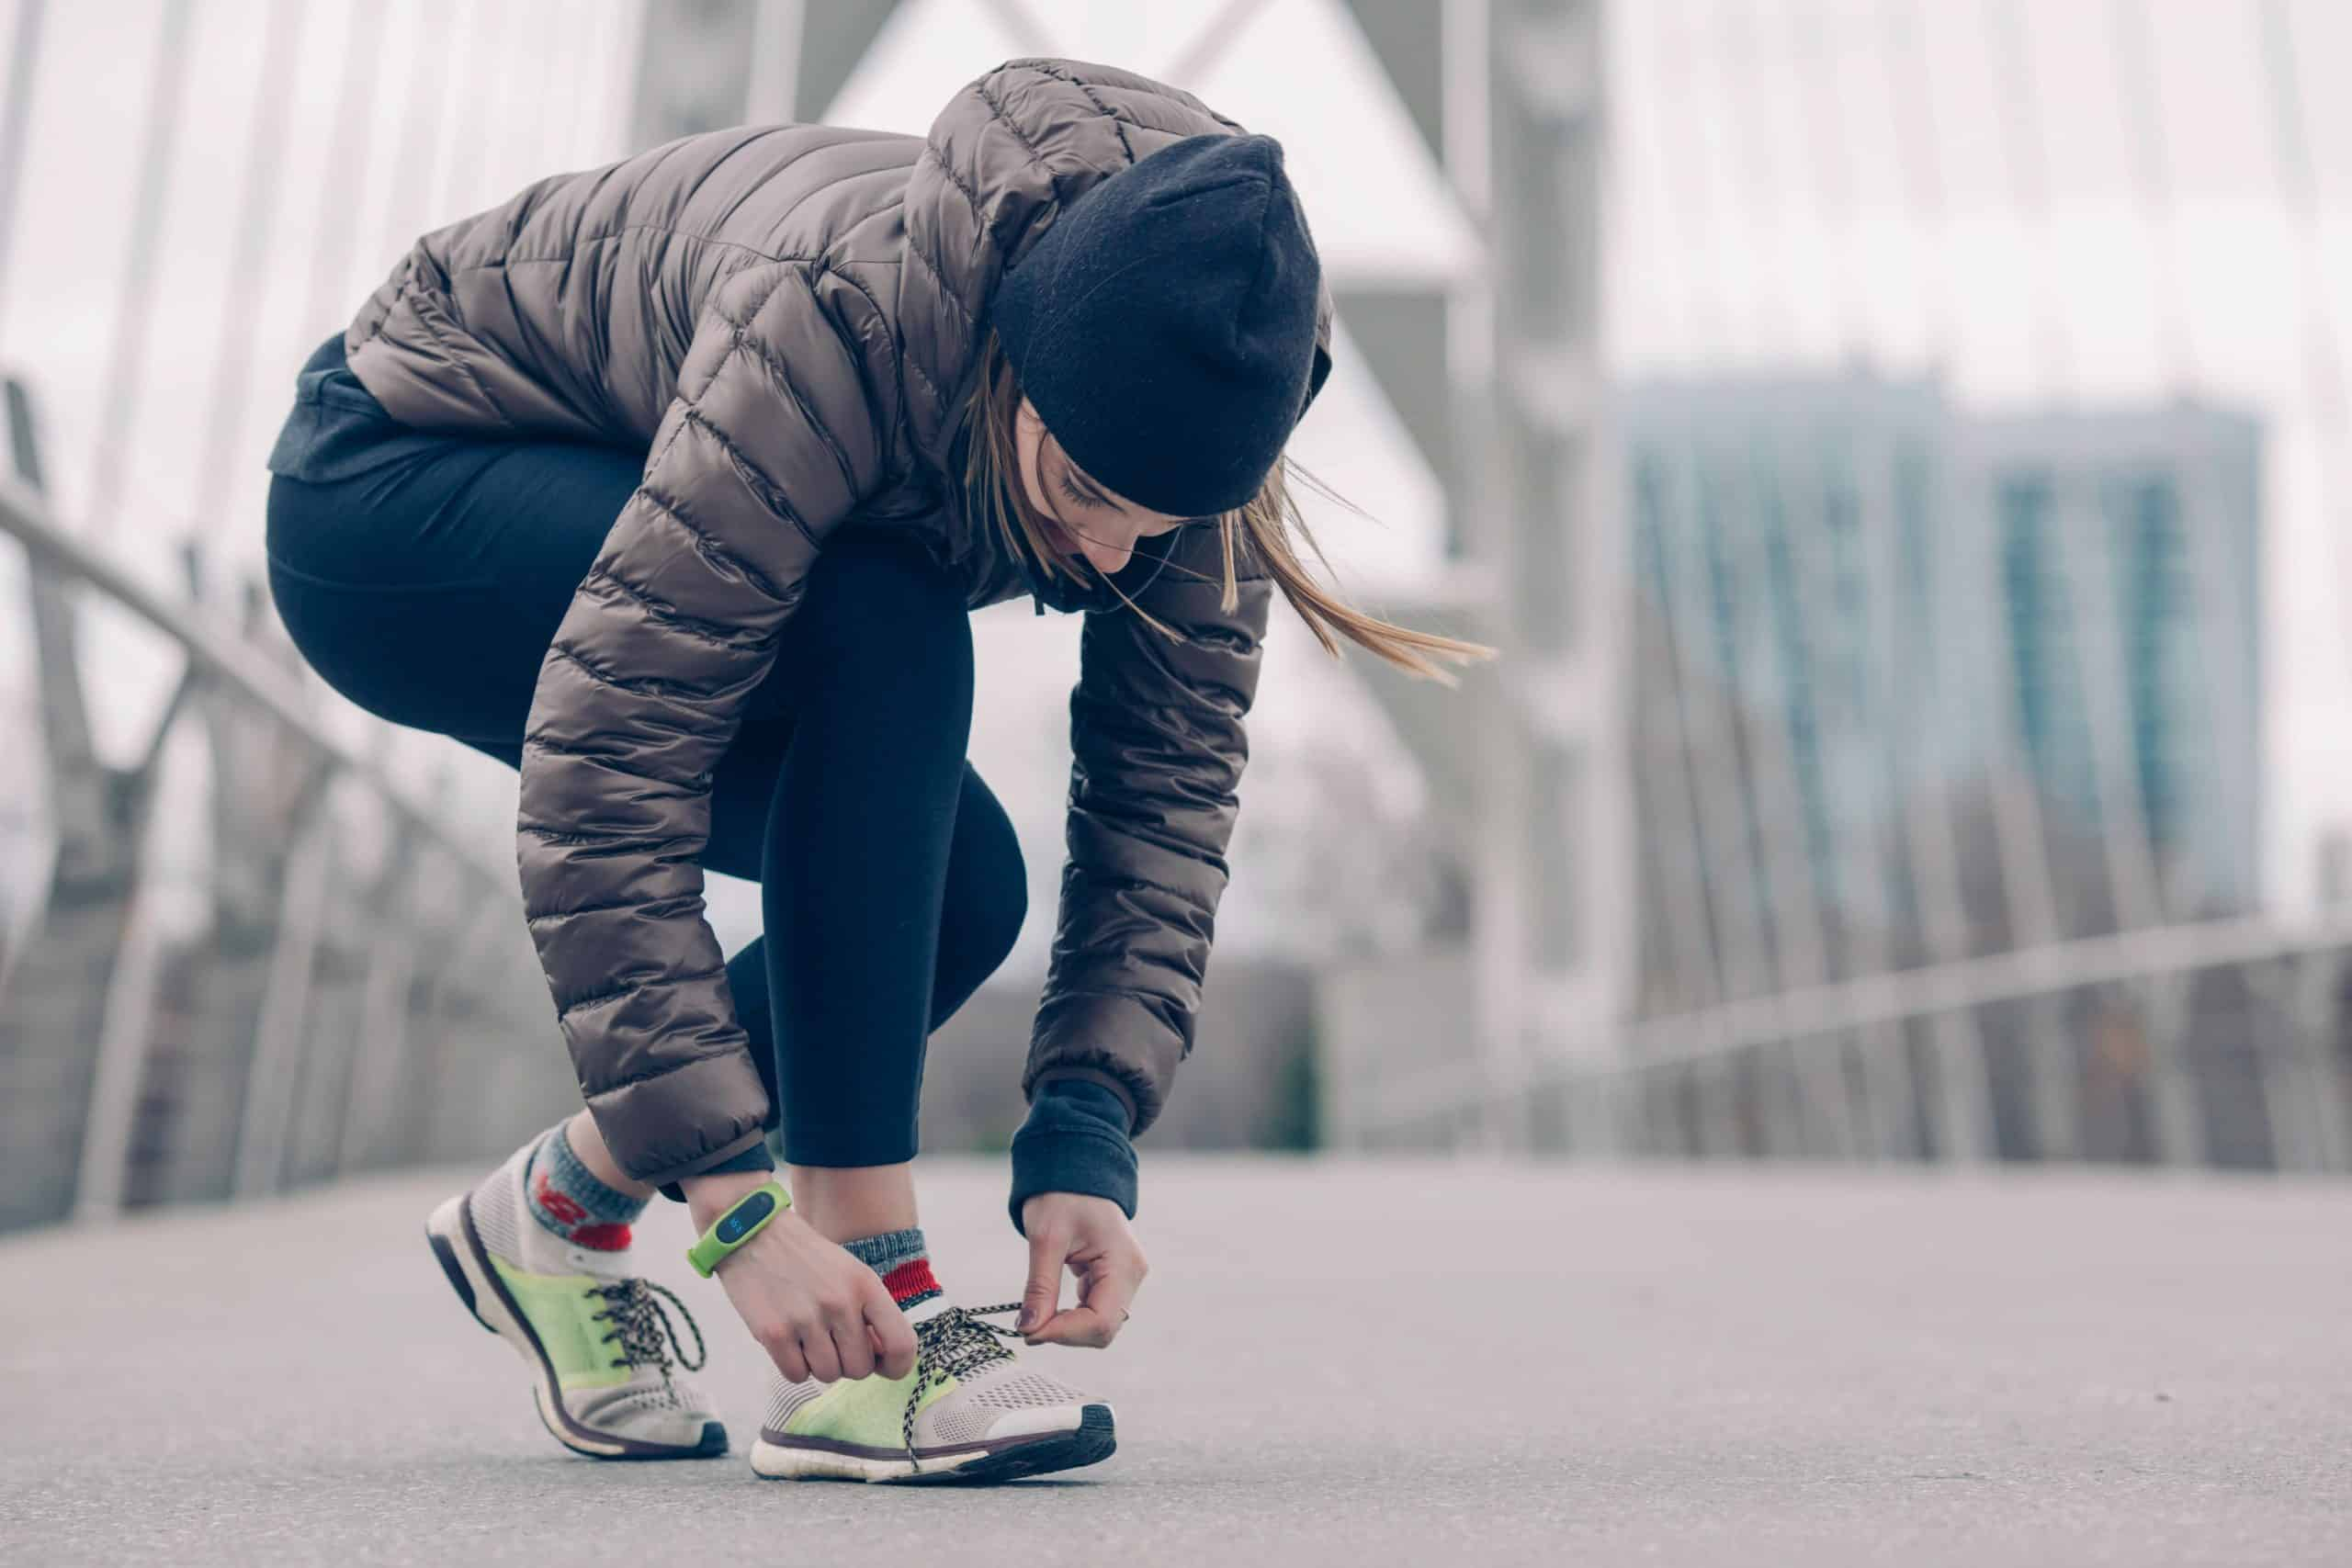 How to Find the Best Running Shoes For Women